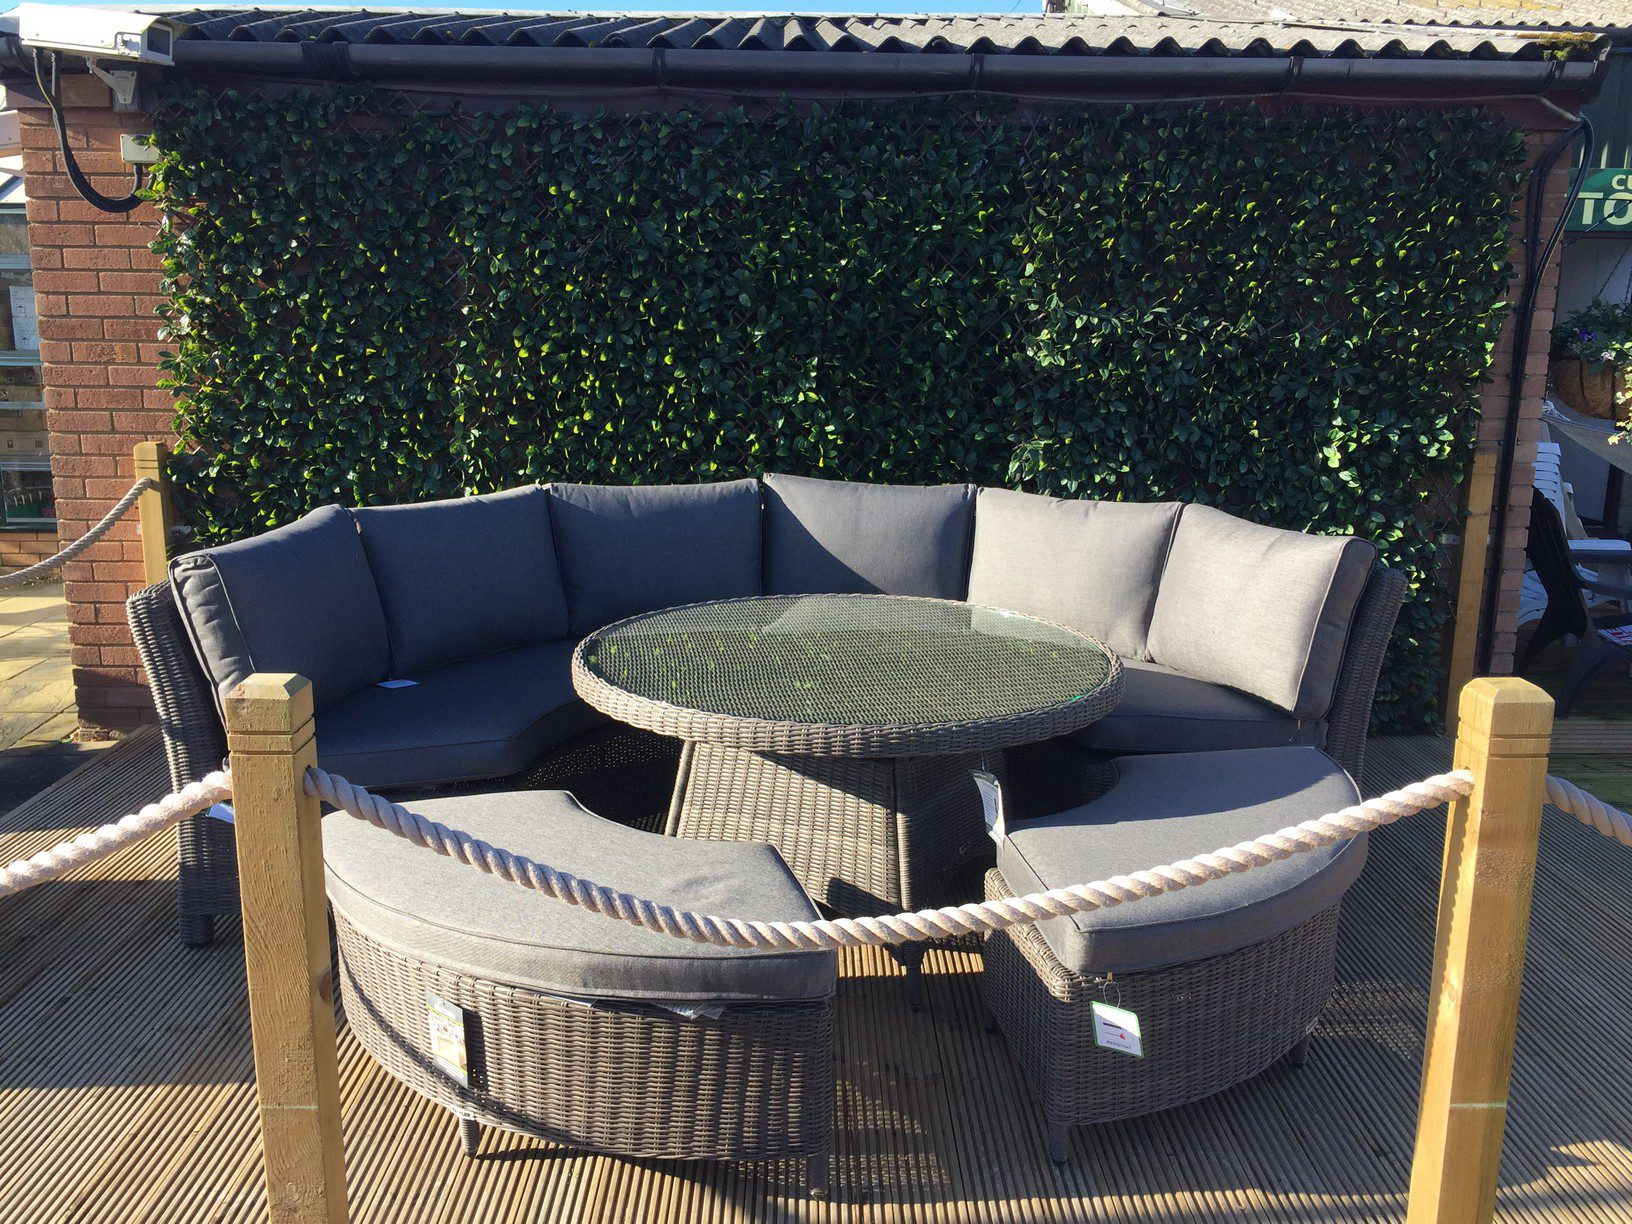 Kettler Palma Round Set In Rattan New For 2018 1